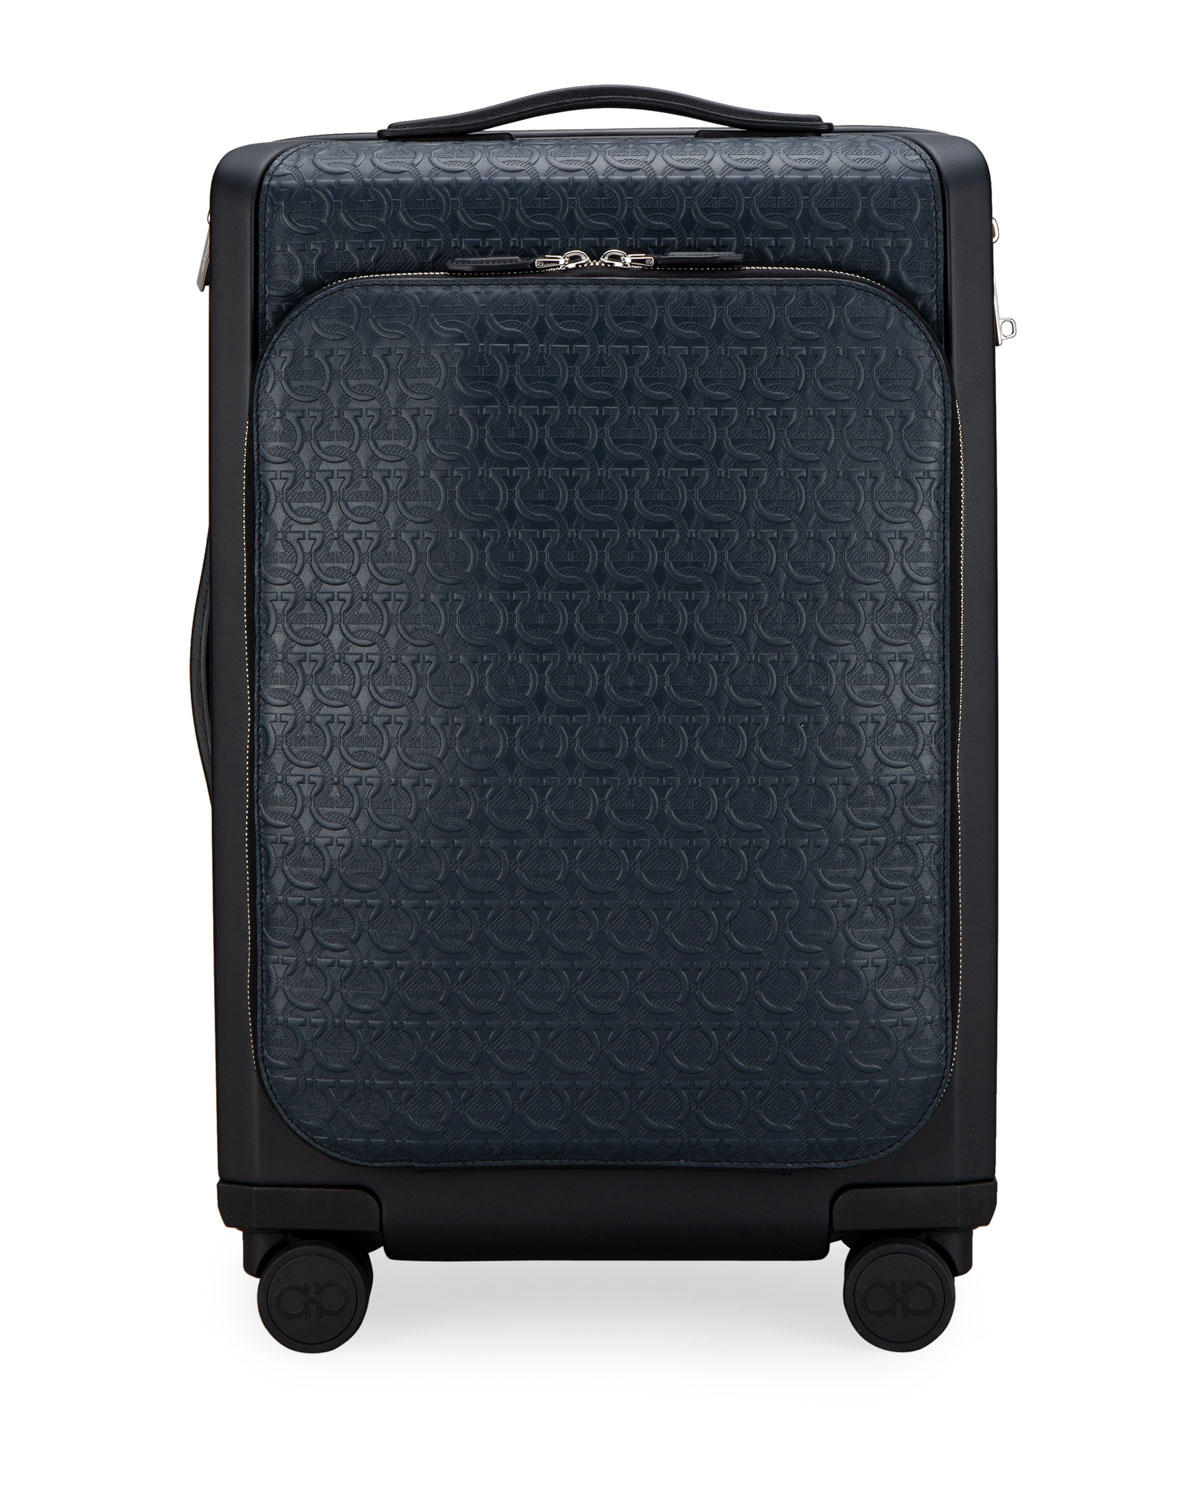 Salvatore Ferragamo Men's Gancio Leather Spinner Luggage